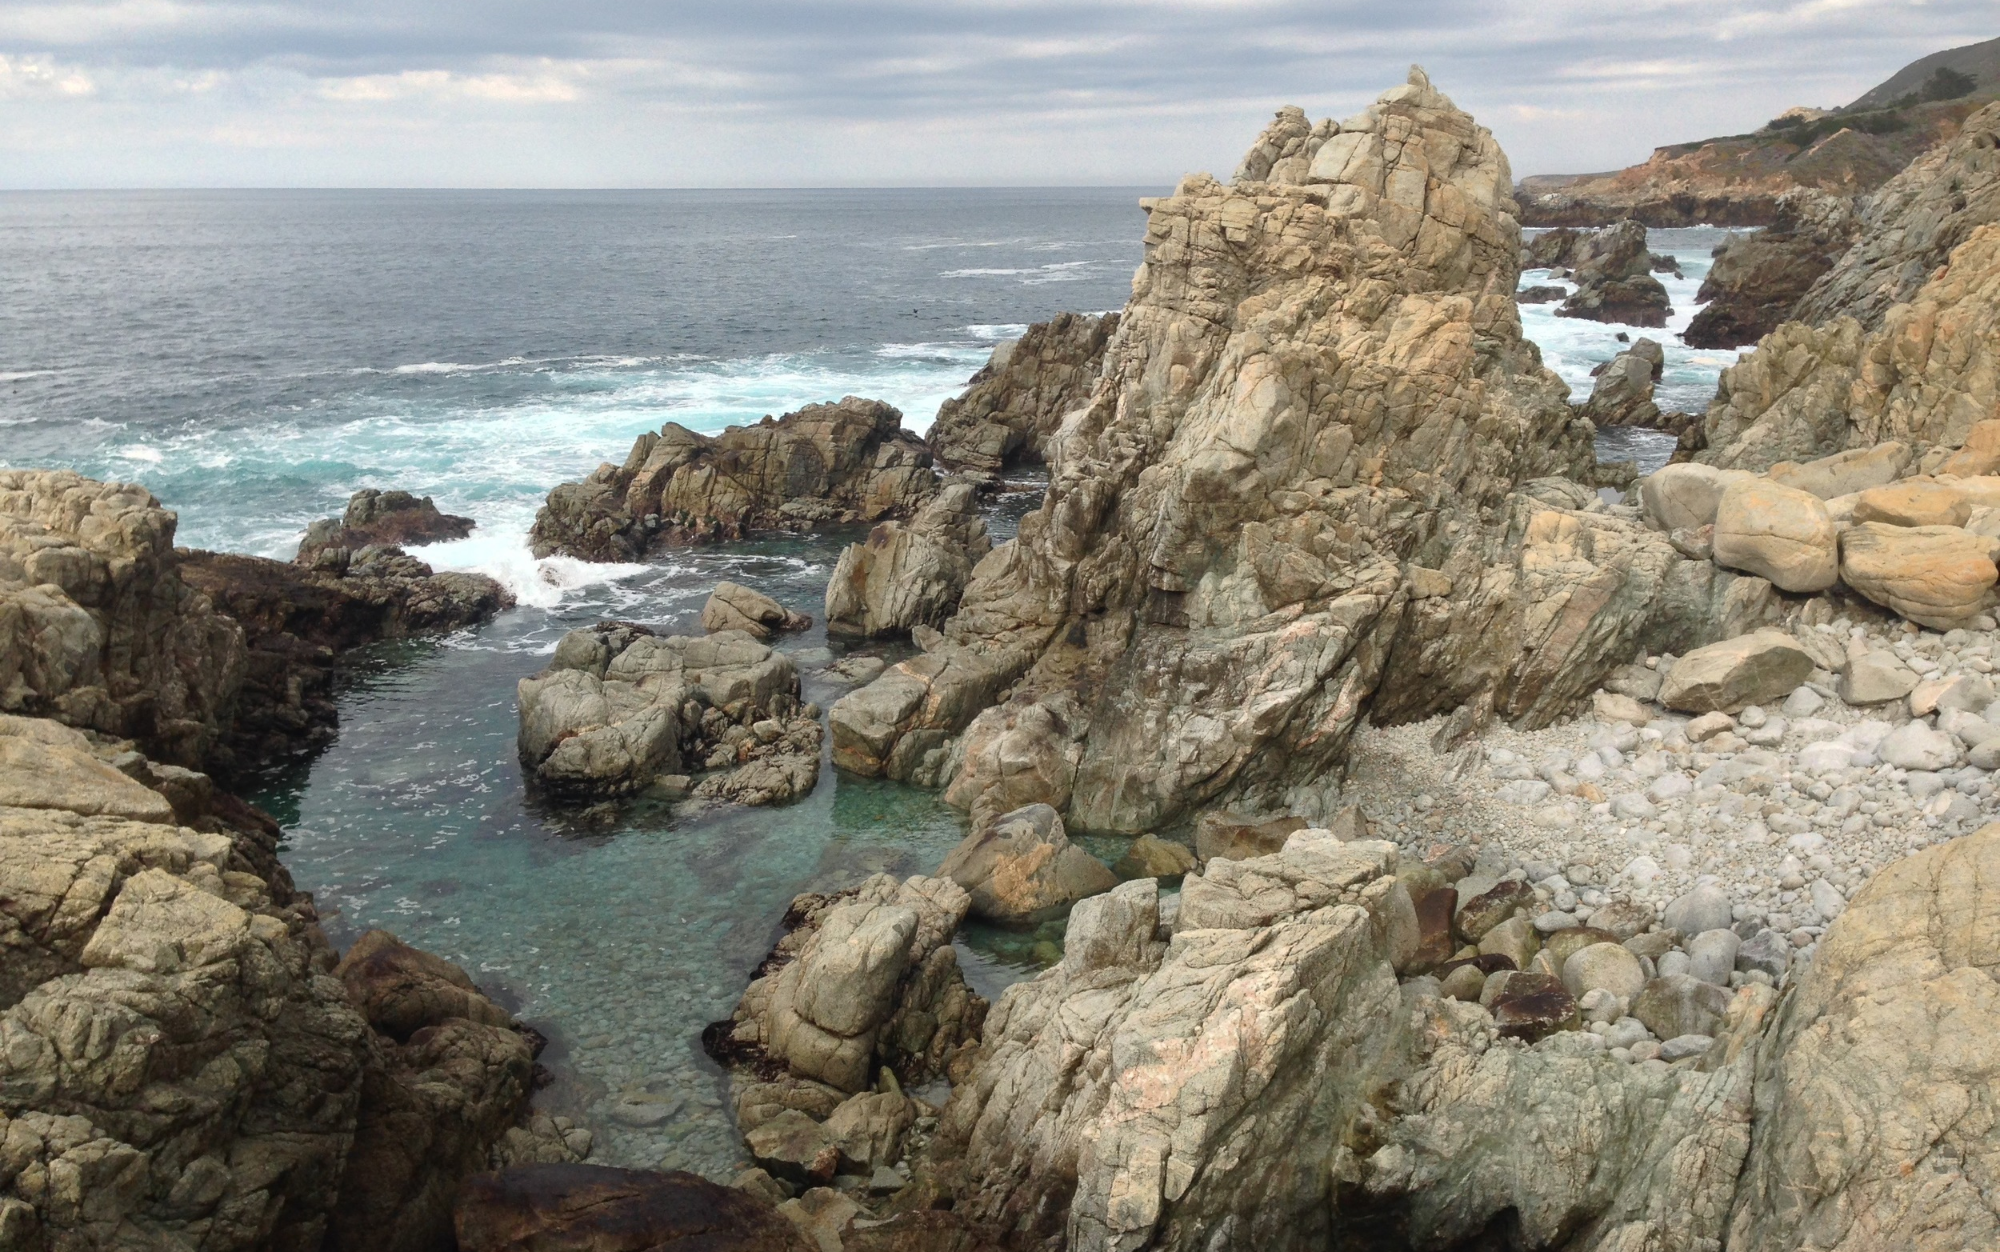 Marveling at the rugged beauty of the coastline, post-plunge. Big Sur, California. Photo credit: Chris Korbulic